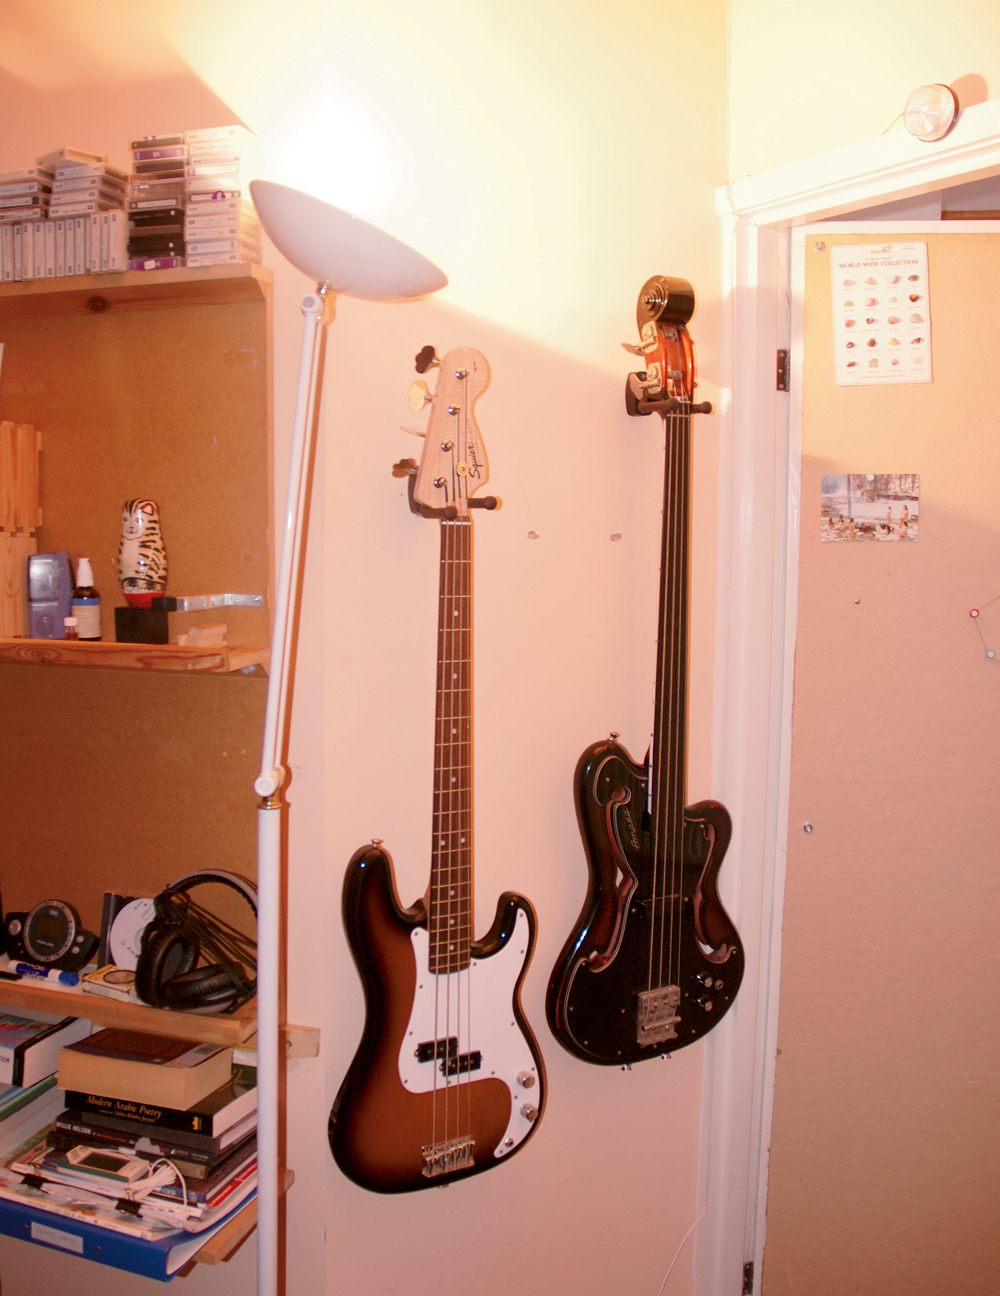 Eno's Bass guitars include a Squire and a fretless Ampeg.